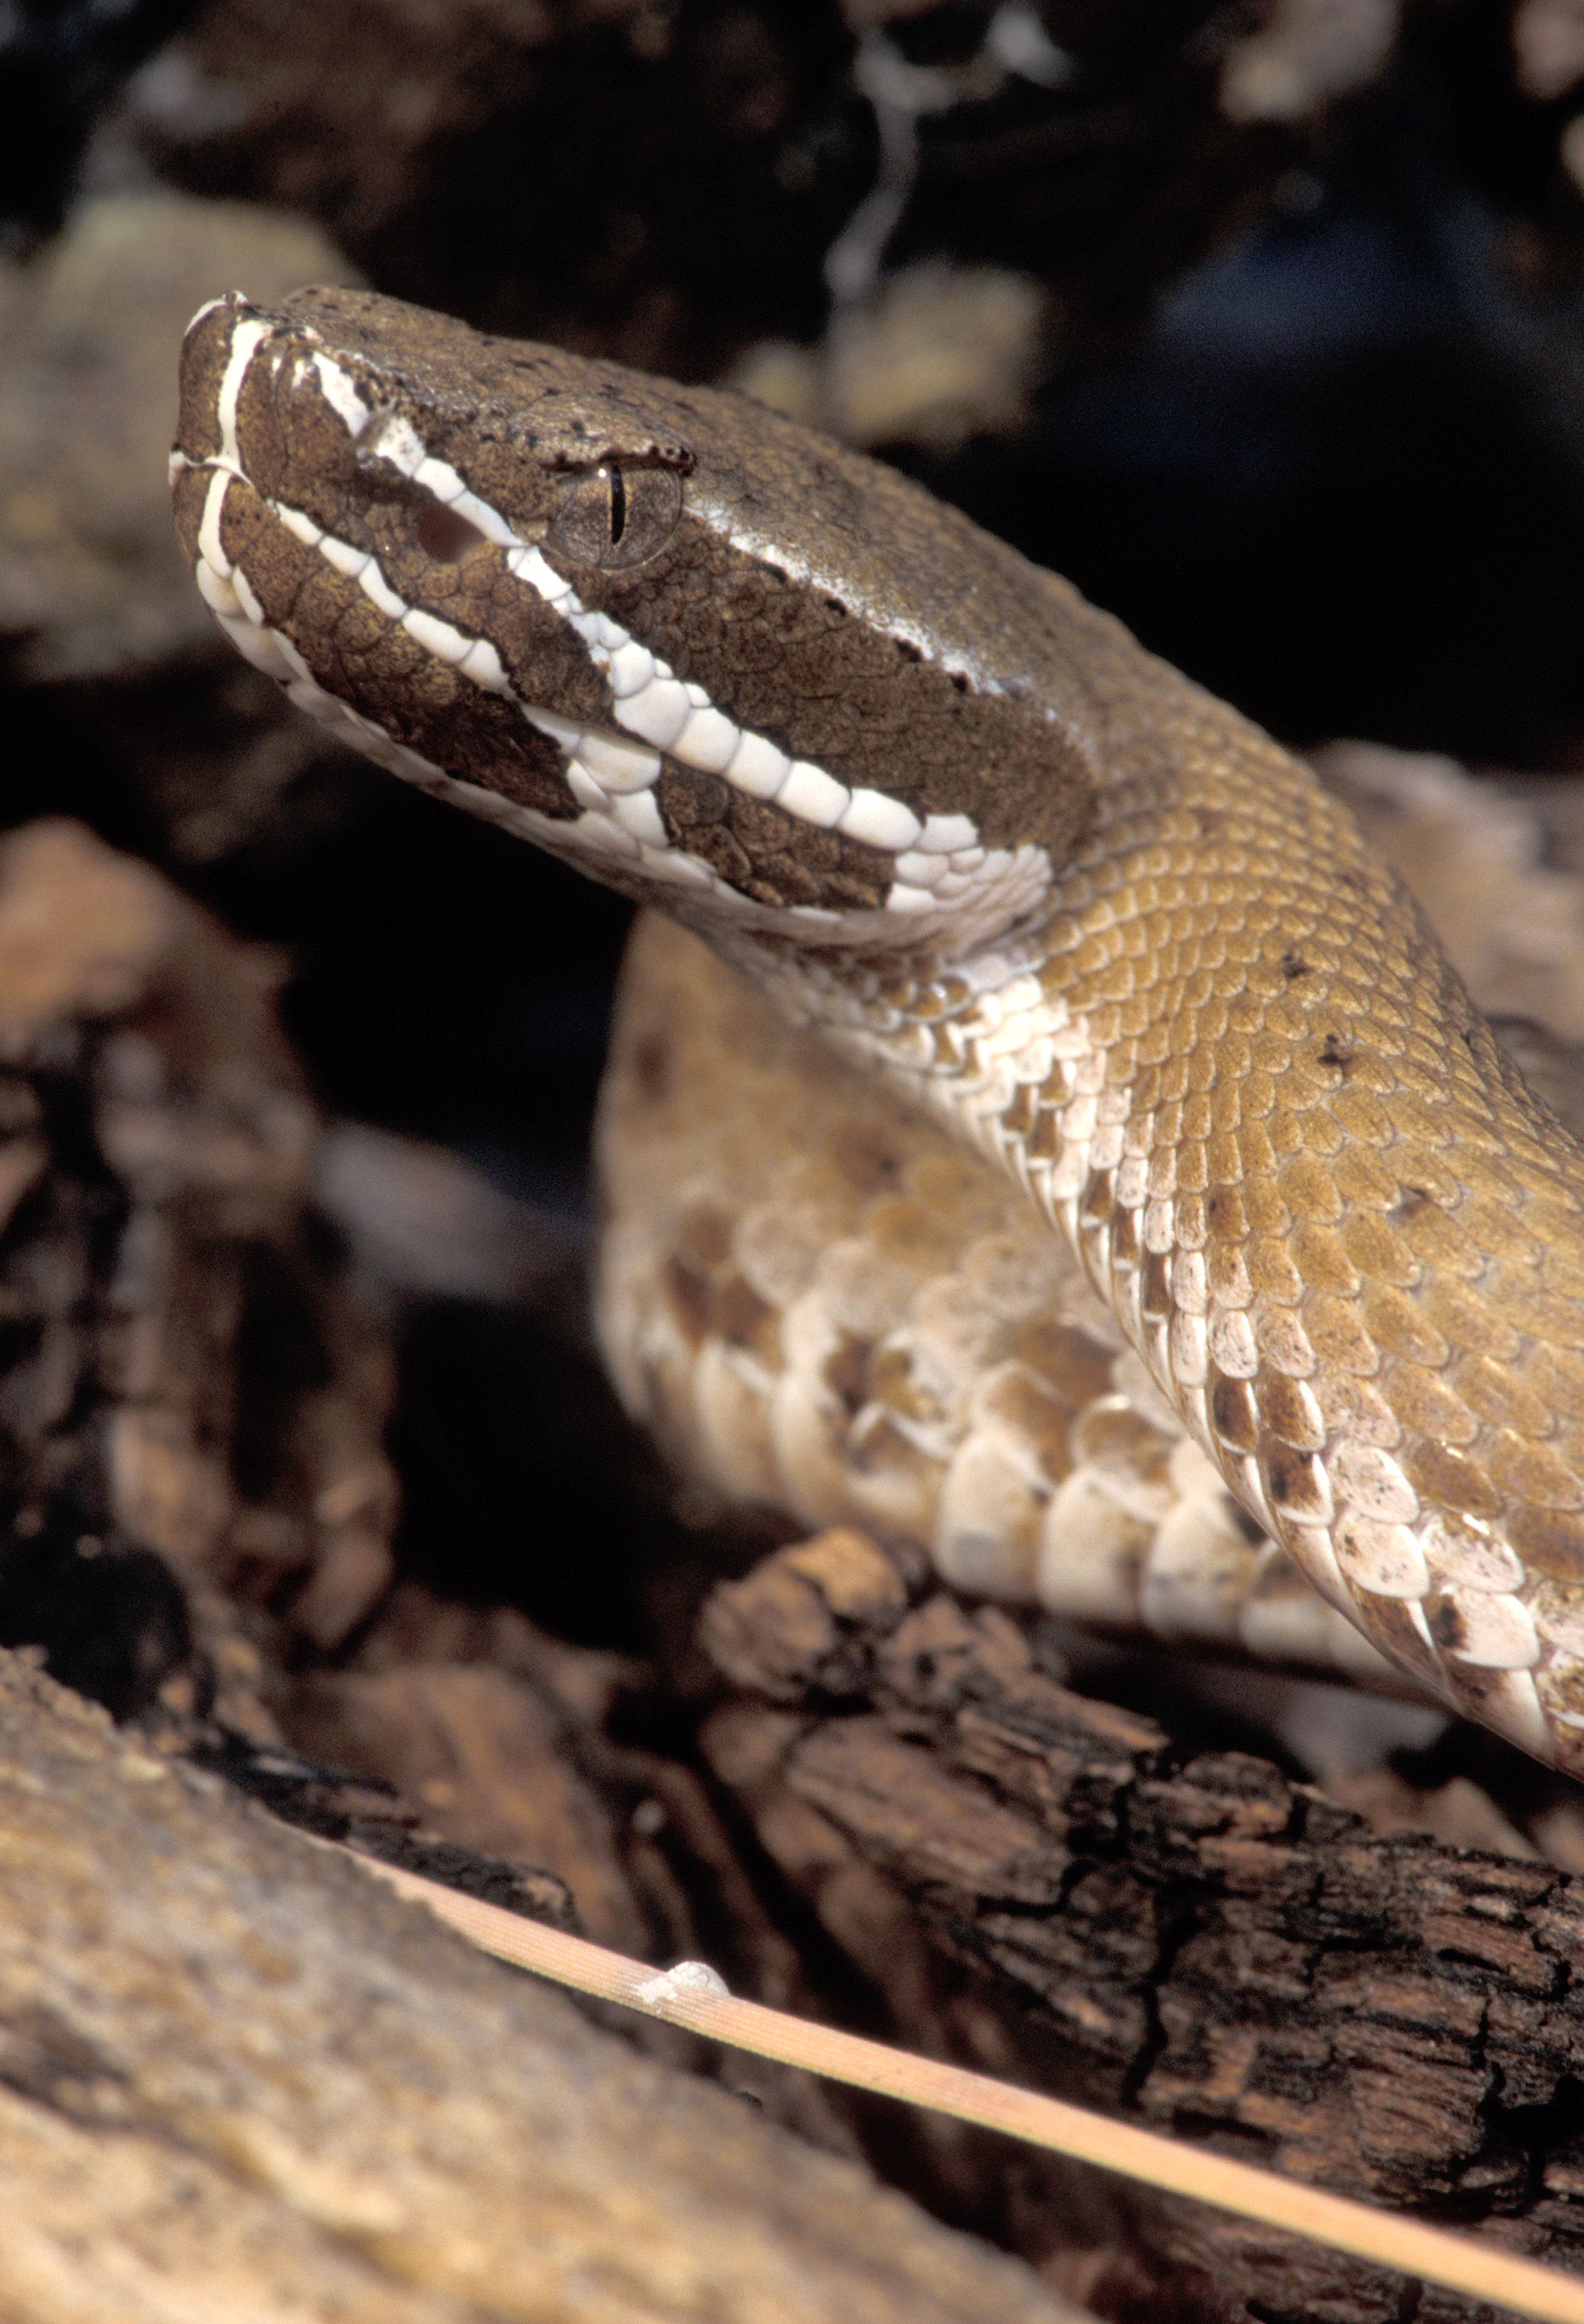 Ridge-nosed or Willard's Rattlesnake